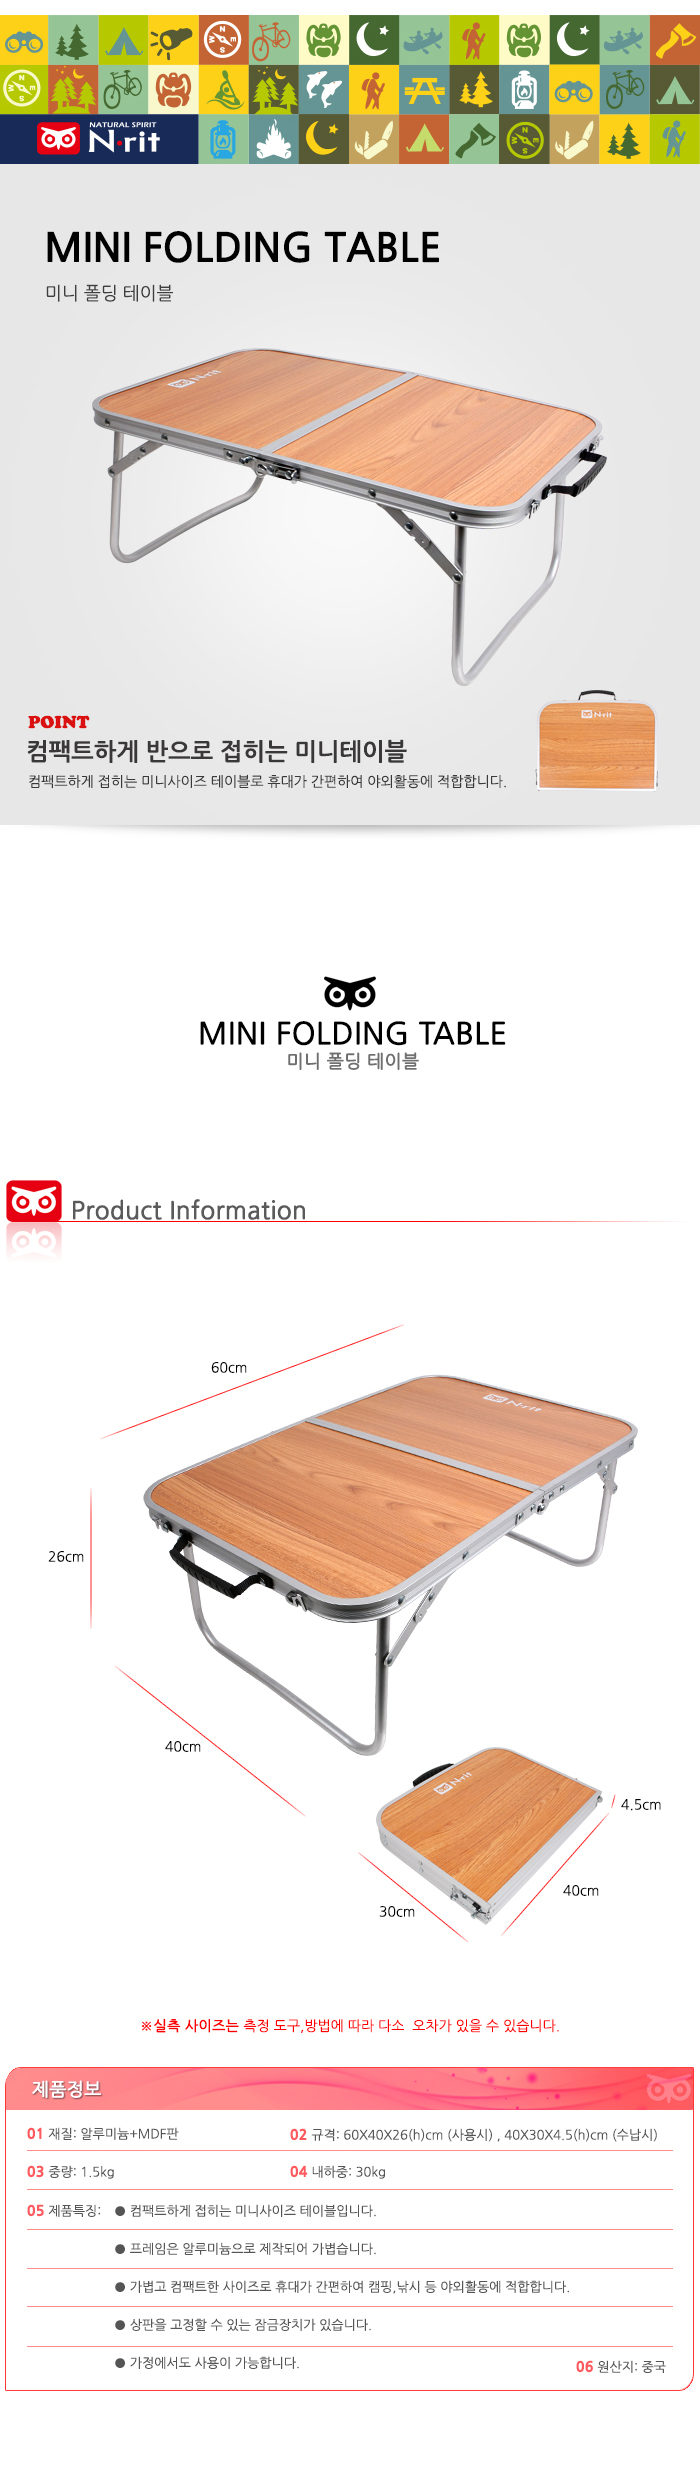 bbq_mini_table_04.jpg